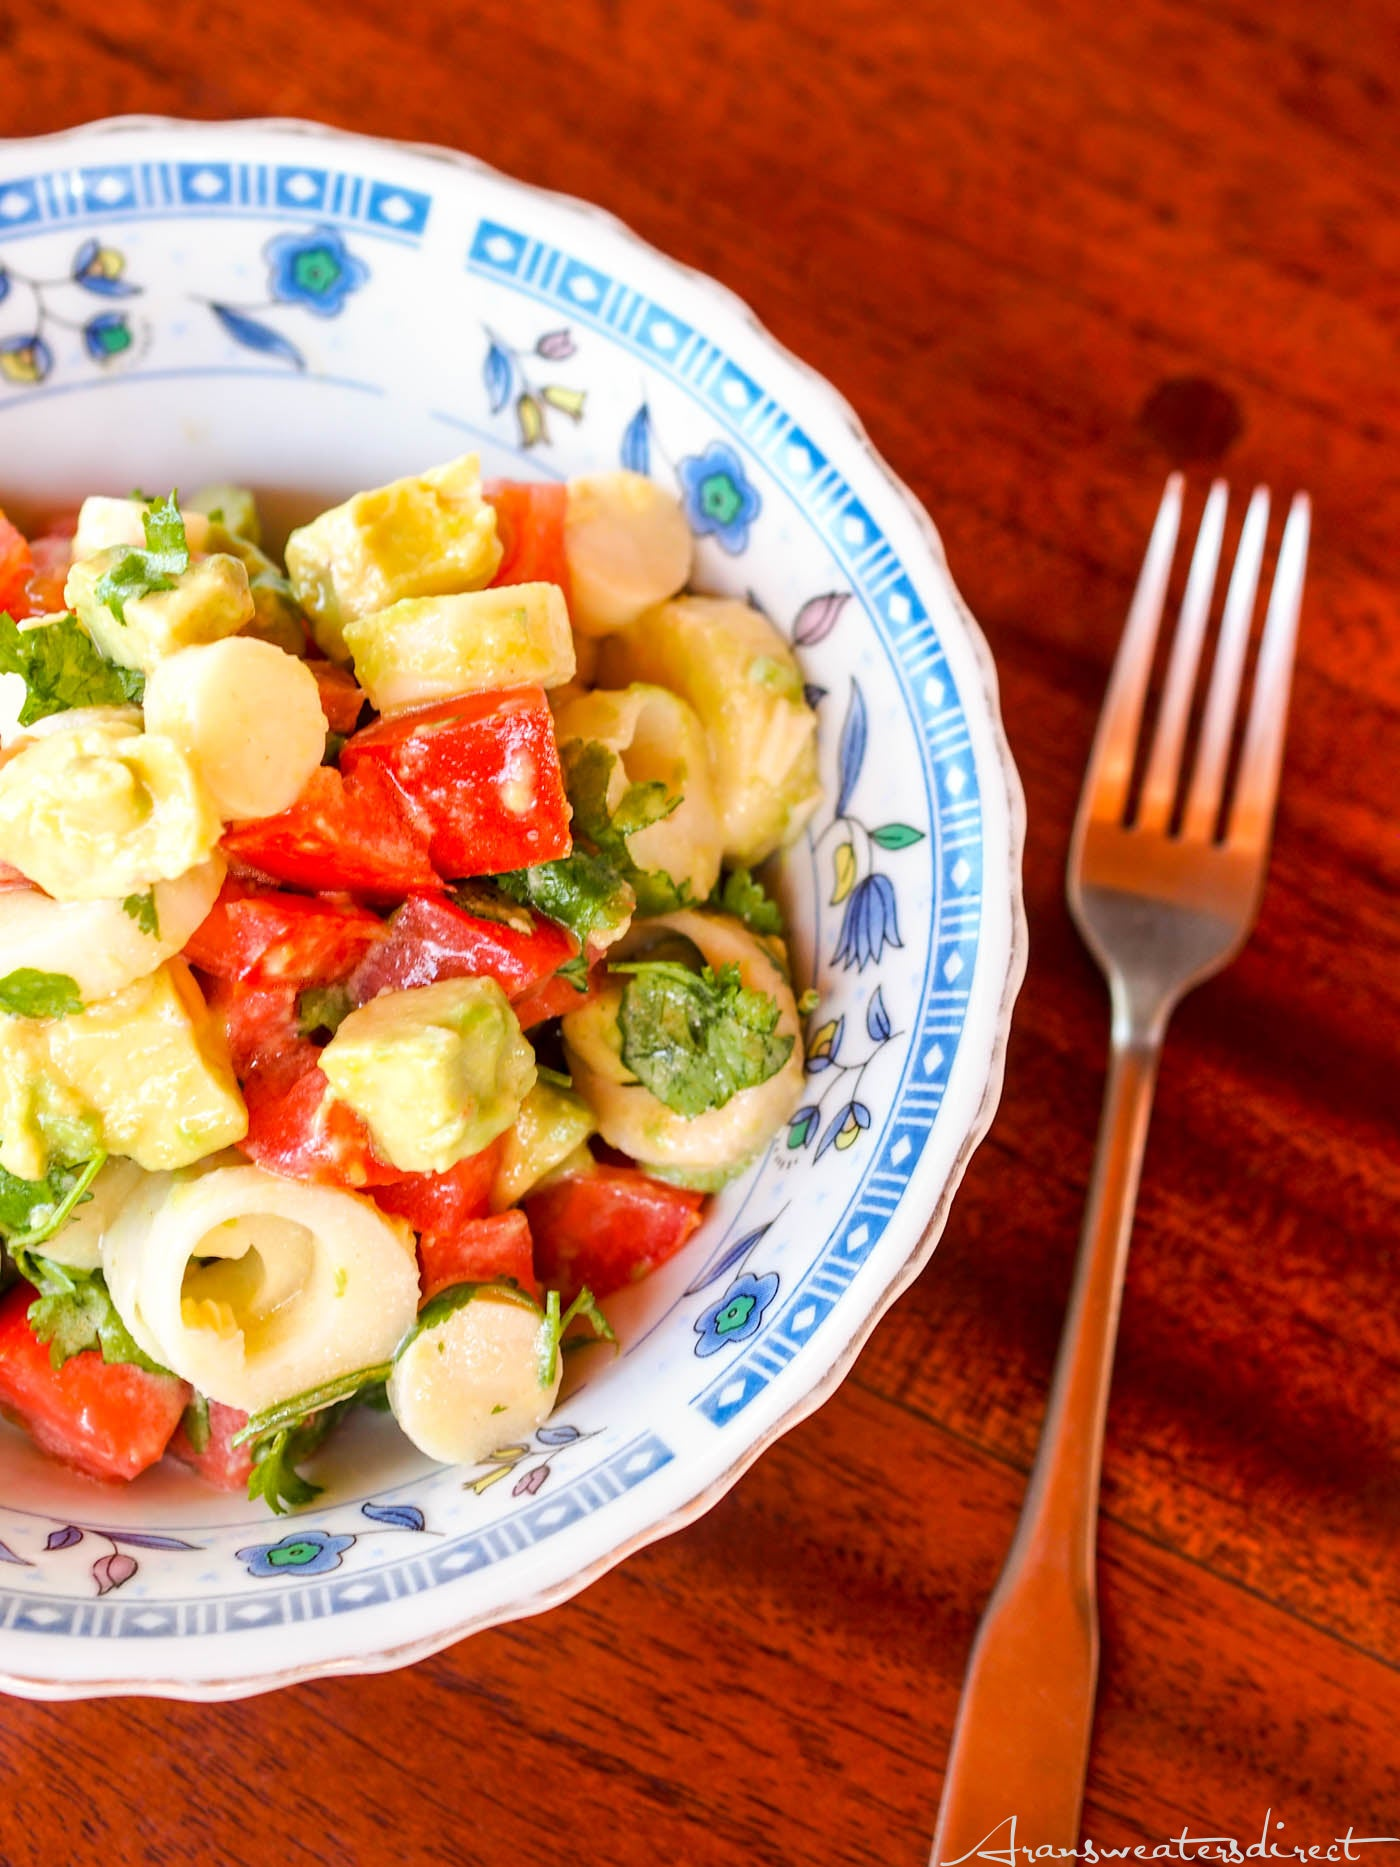 Whip up a delish salad that is both vegan and gluten-free! #vegan #glutenfree #cleaneating